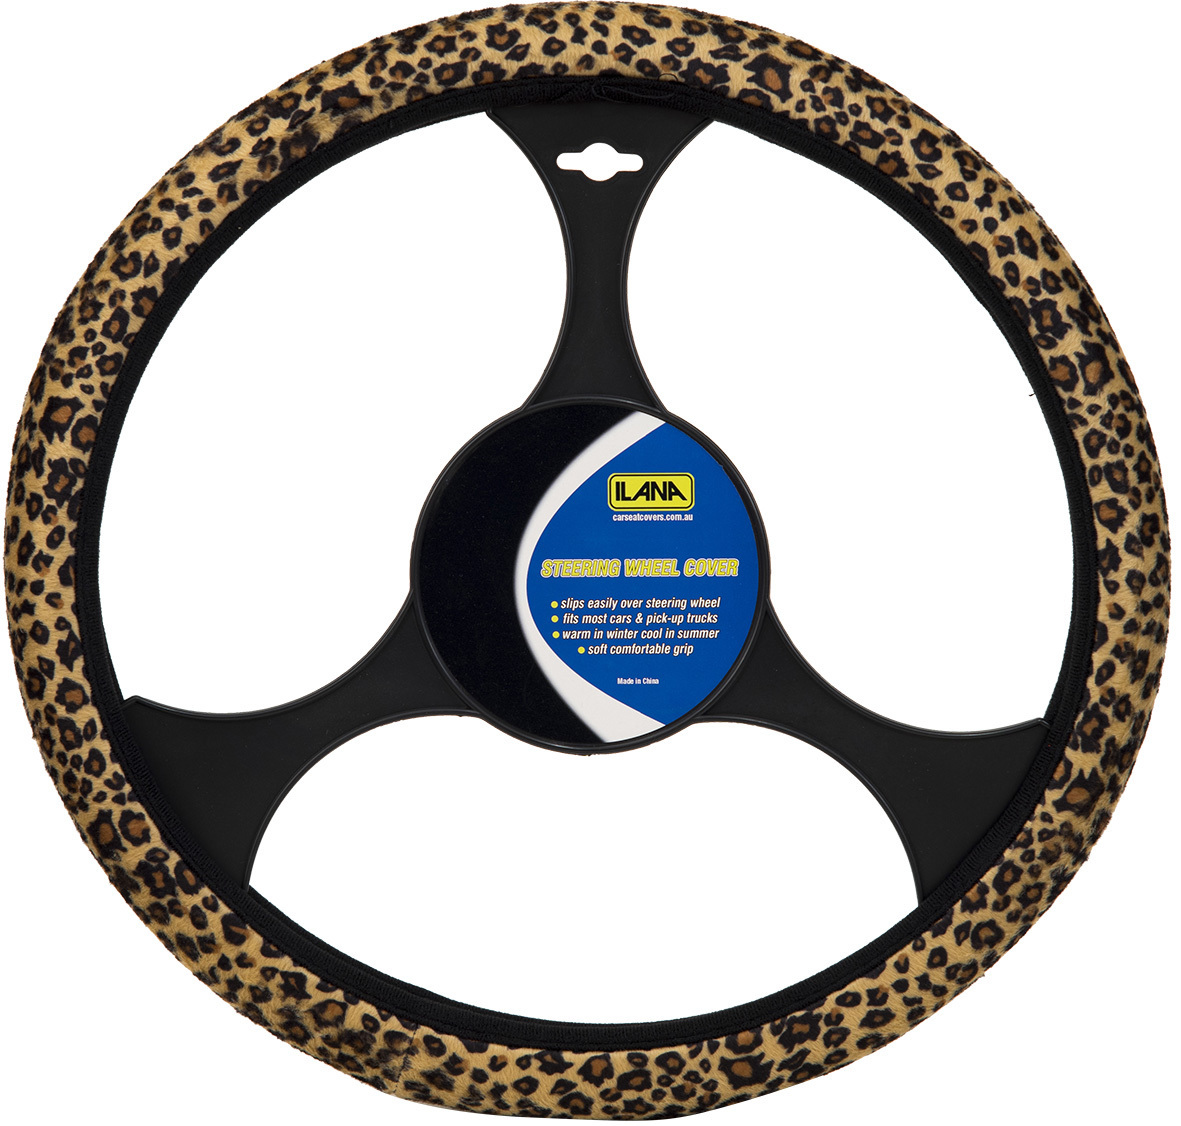 Wild Leopard Steering Wheel Cover.